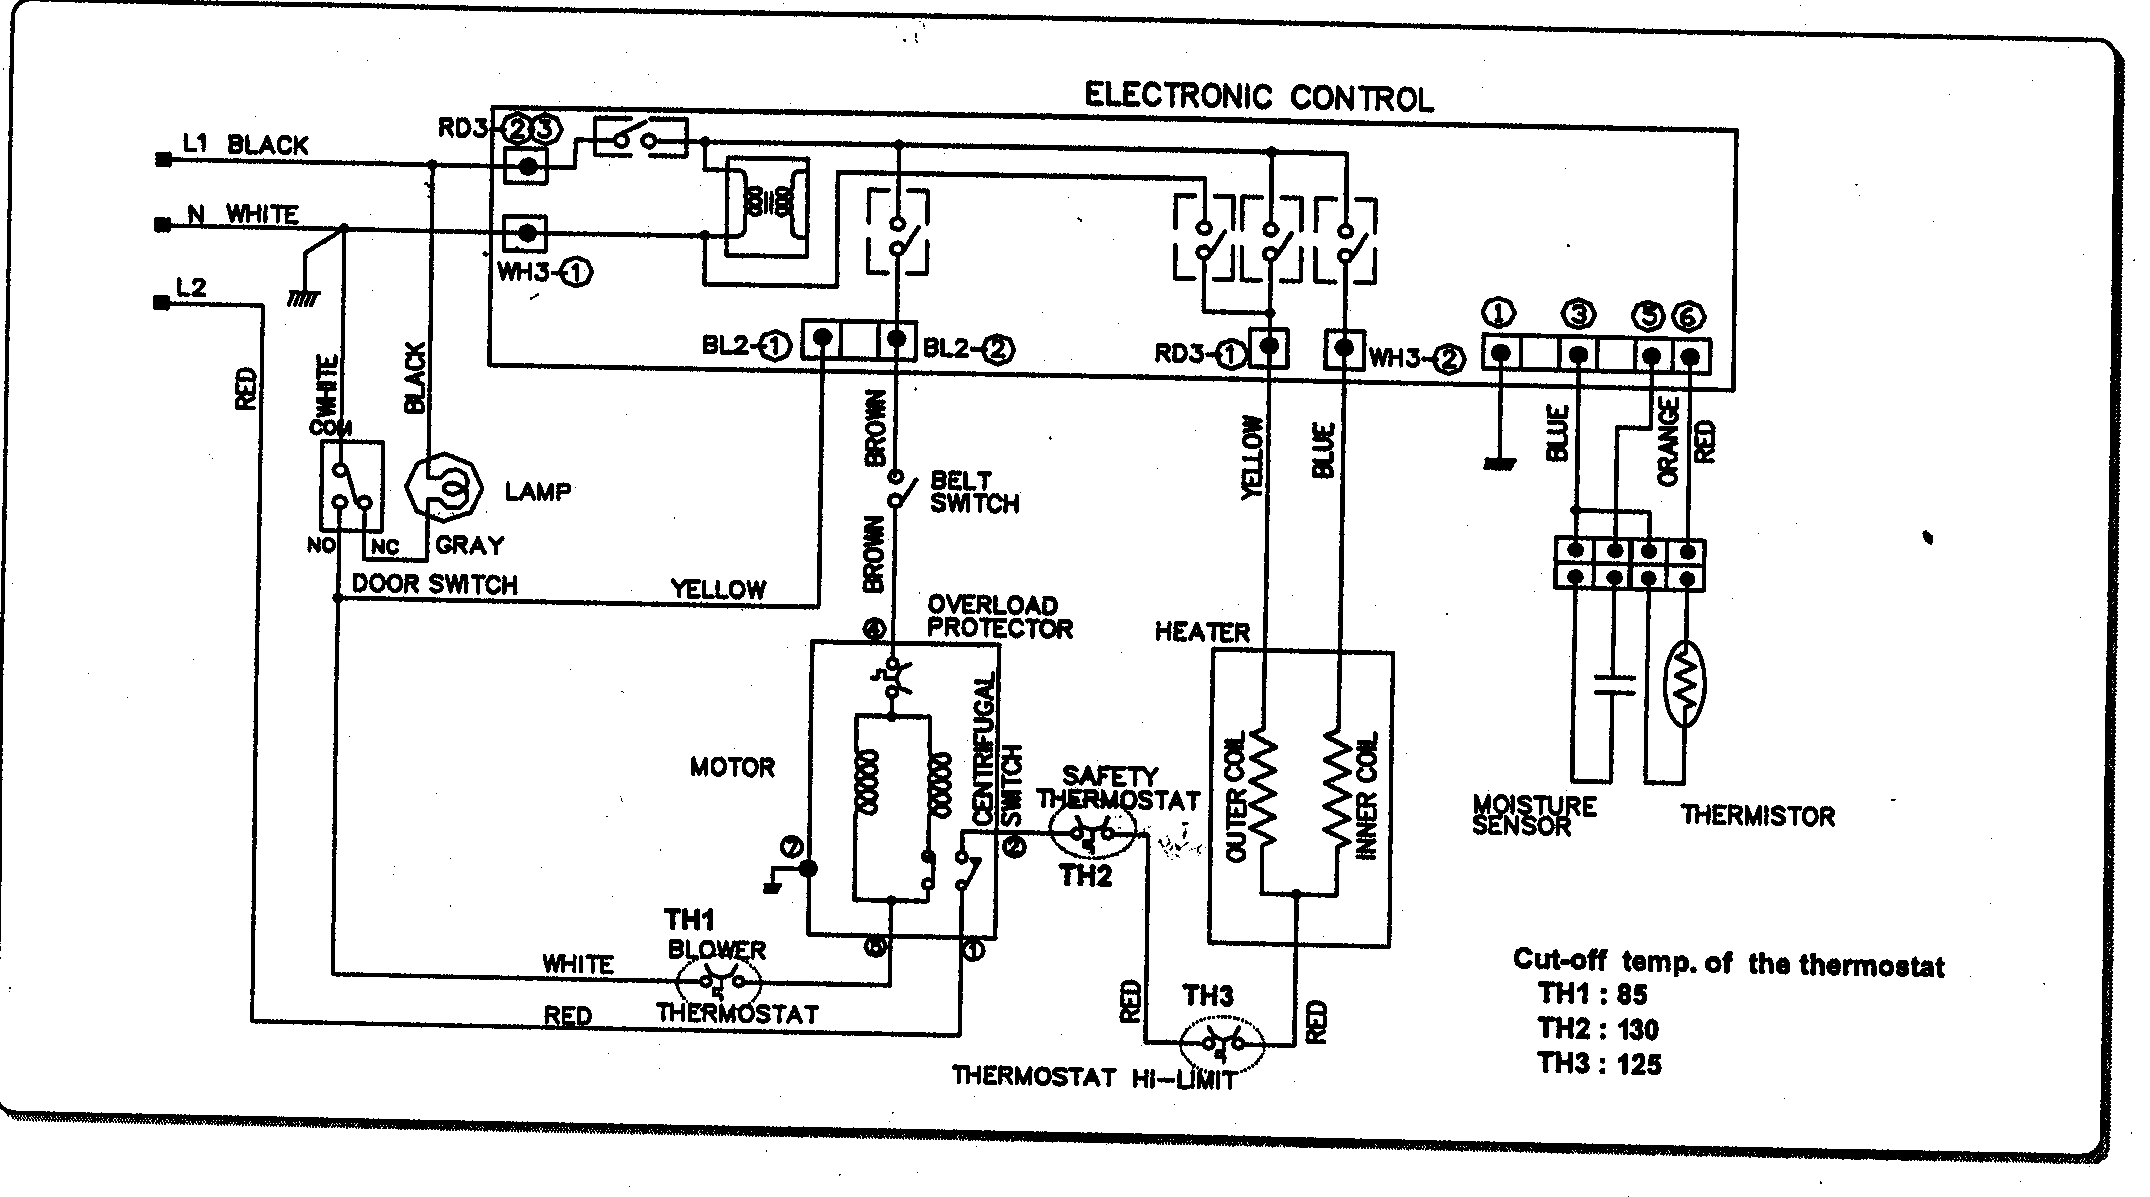 wiring diagram for samsung oven